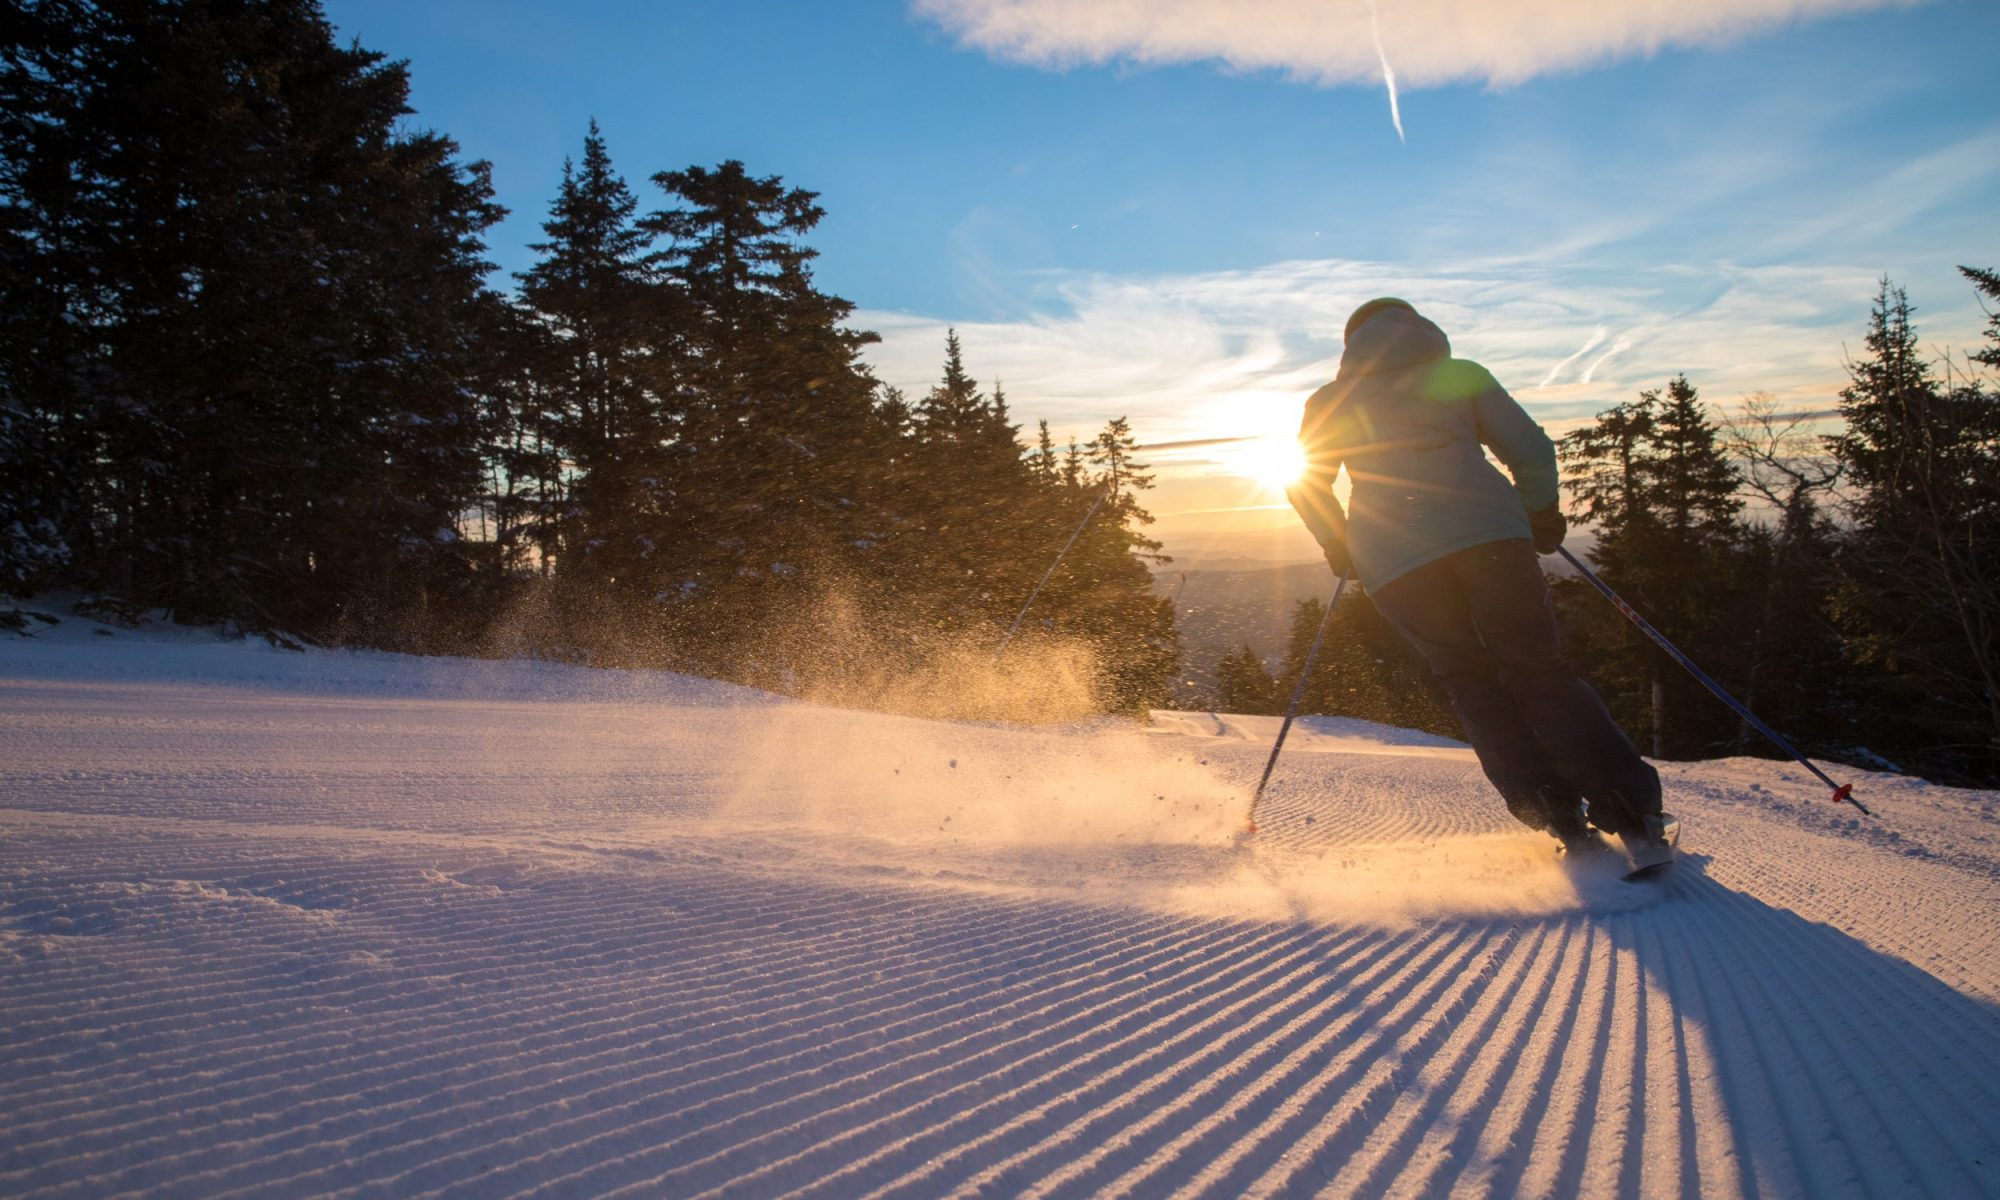 Mount Snow, one of the Peak Resorts which are welcoming three new ski areas of Snow Time. Mackenzie.